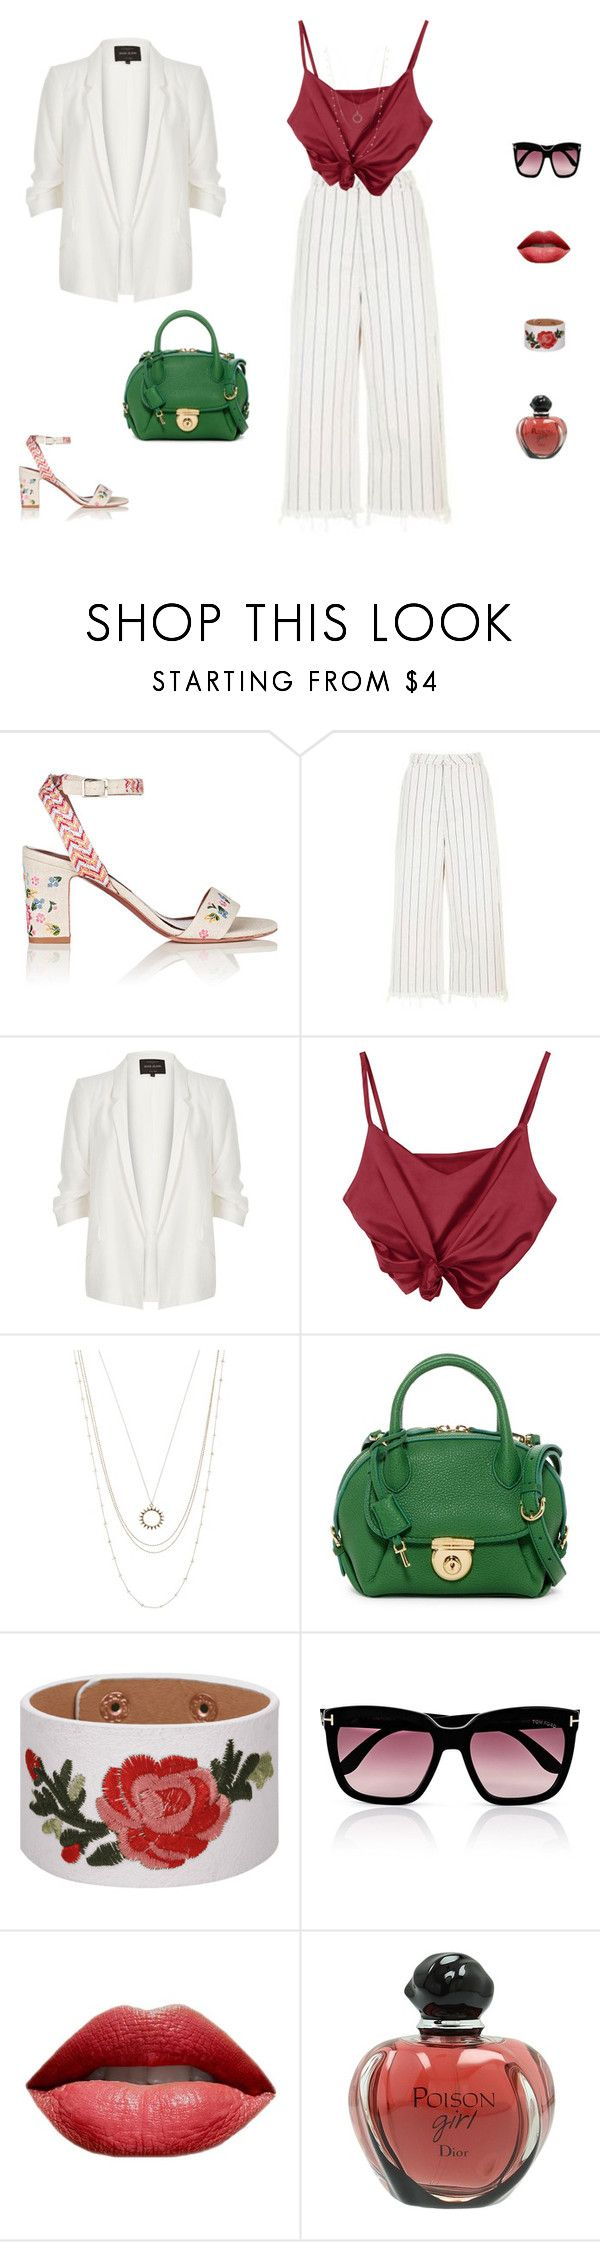 """""""Ferragamo bag"""" by mariagraziatrotta ❤ liked on Polyvore featuring Tabitha Simmons, Topshop, River Island, ASOS, Salvatore Ferragamo, Tom Ford and Christian Dior"""